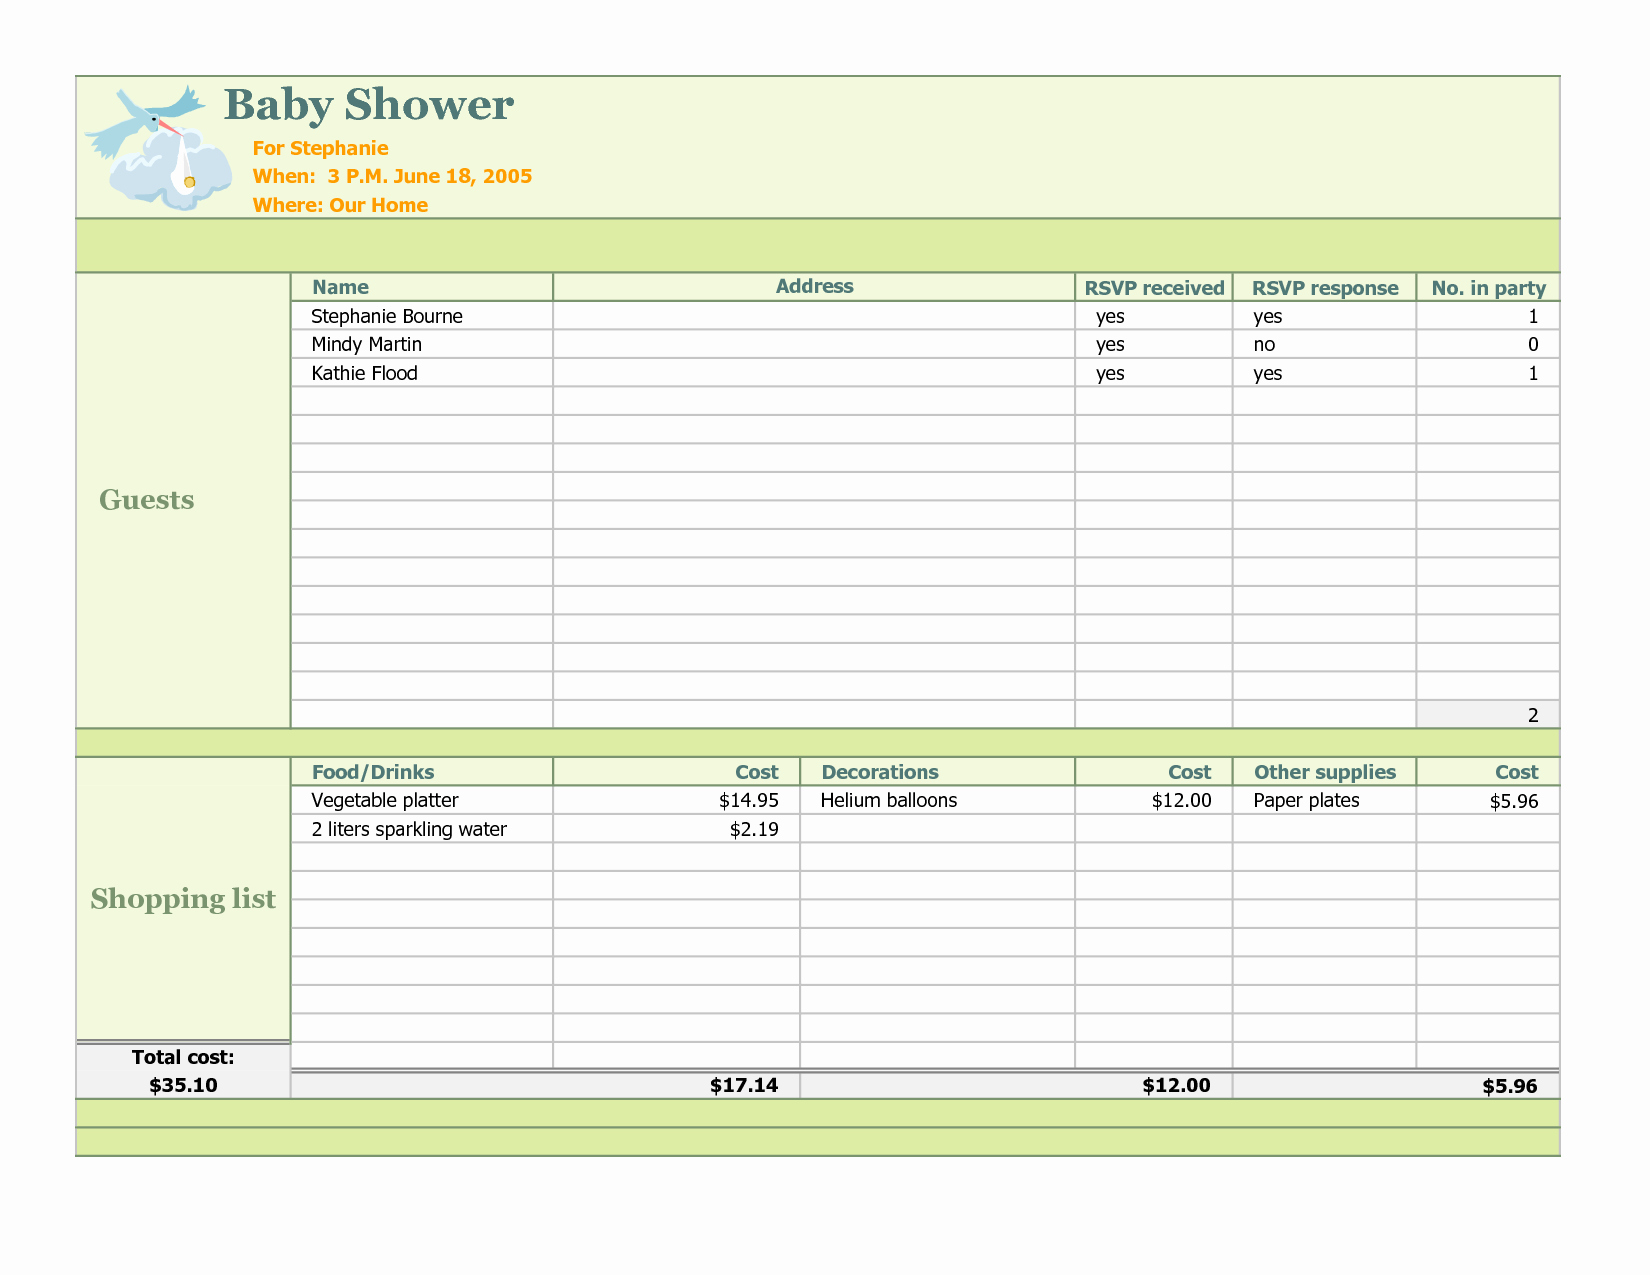 Baby Shower Planning Check List Inspirational Baby Shower Planning Checklist